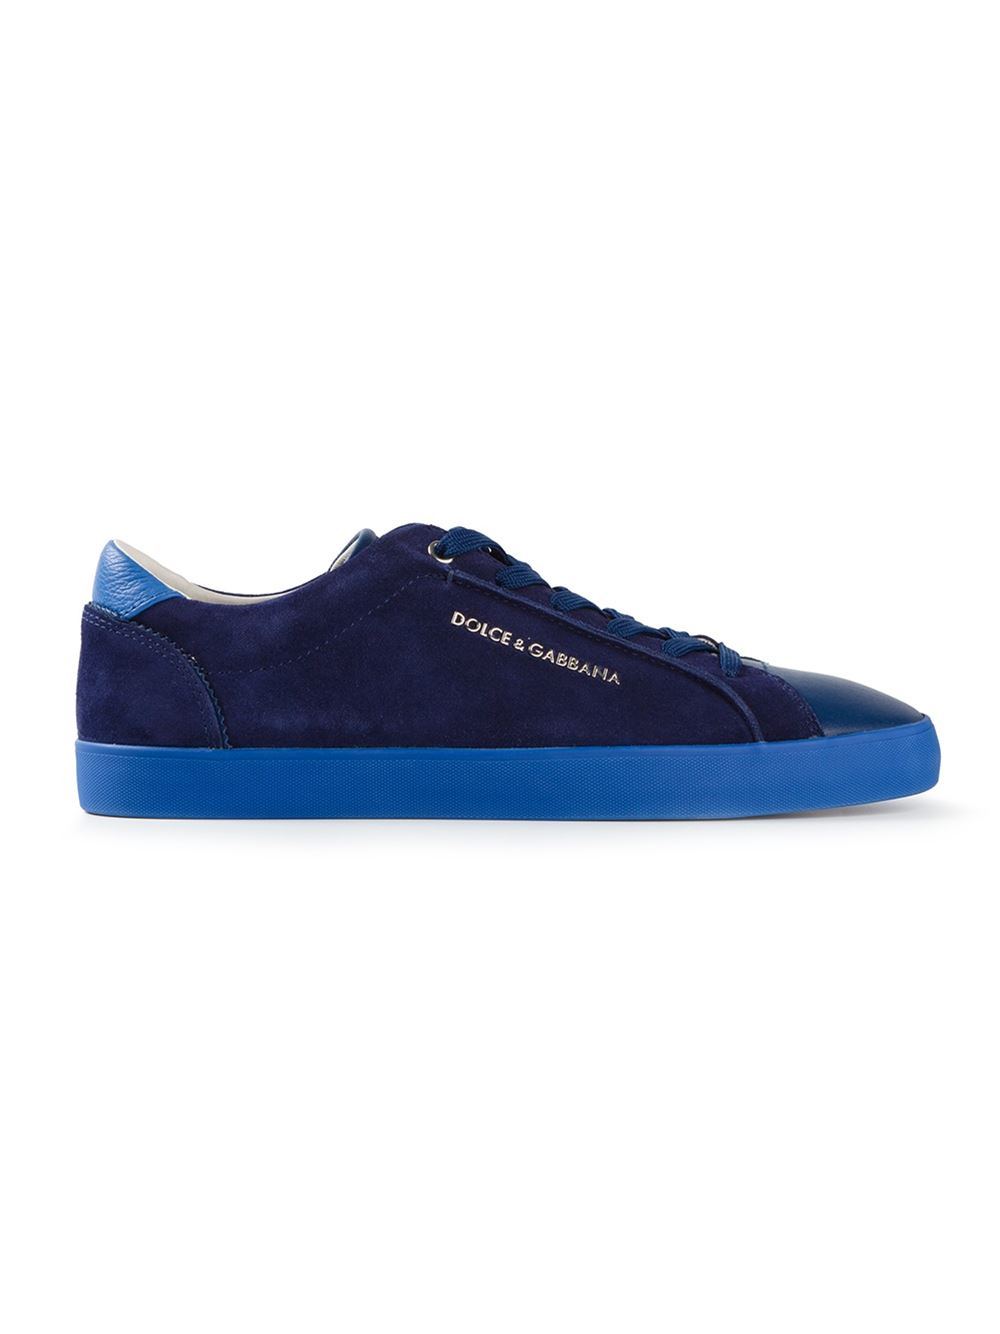 dolce gabbana lace up sneakers in blue for men lyst. Black Bedroom Furniture Sets. Home Design Ideas